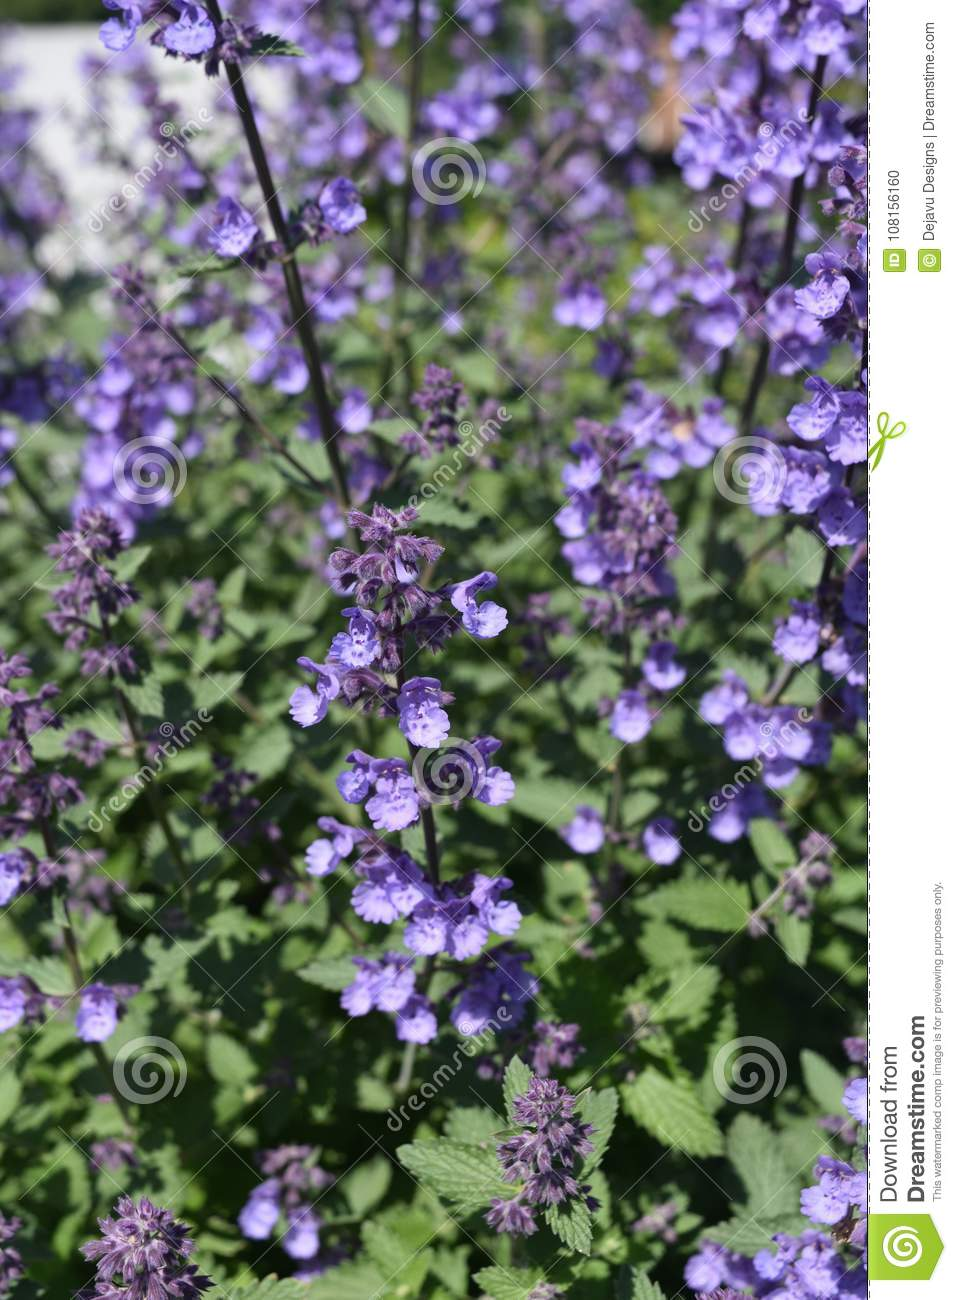 Pretty Image of Lavender in the Spring